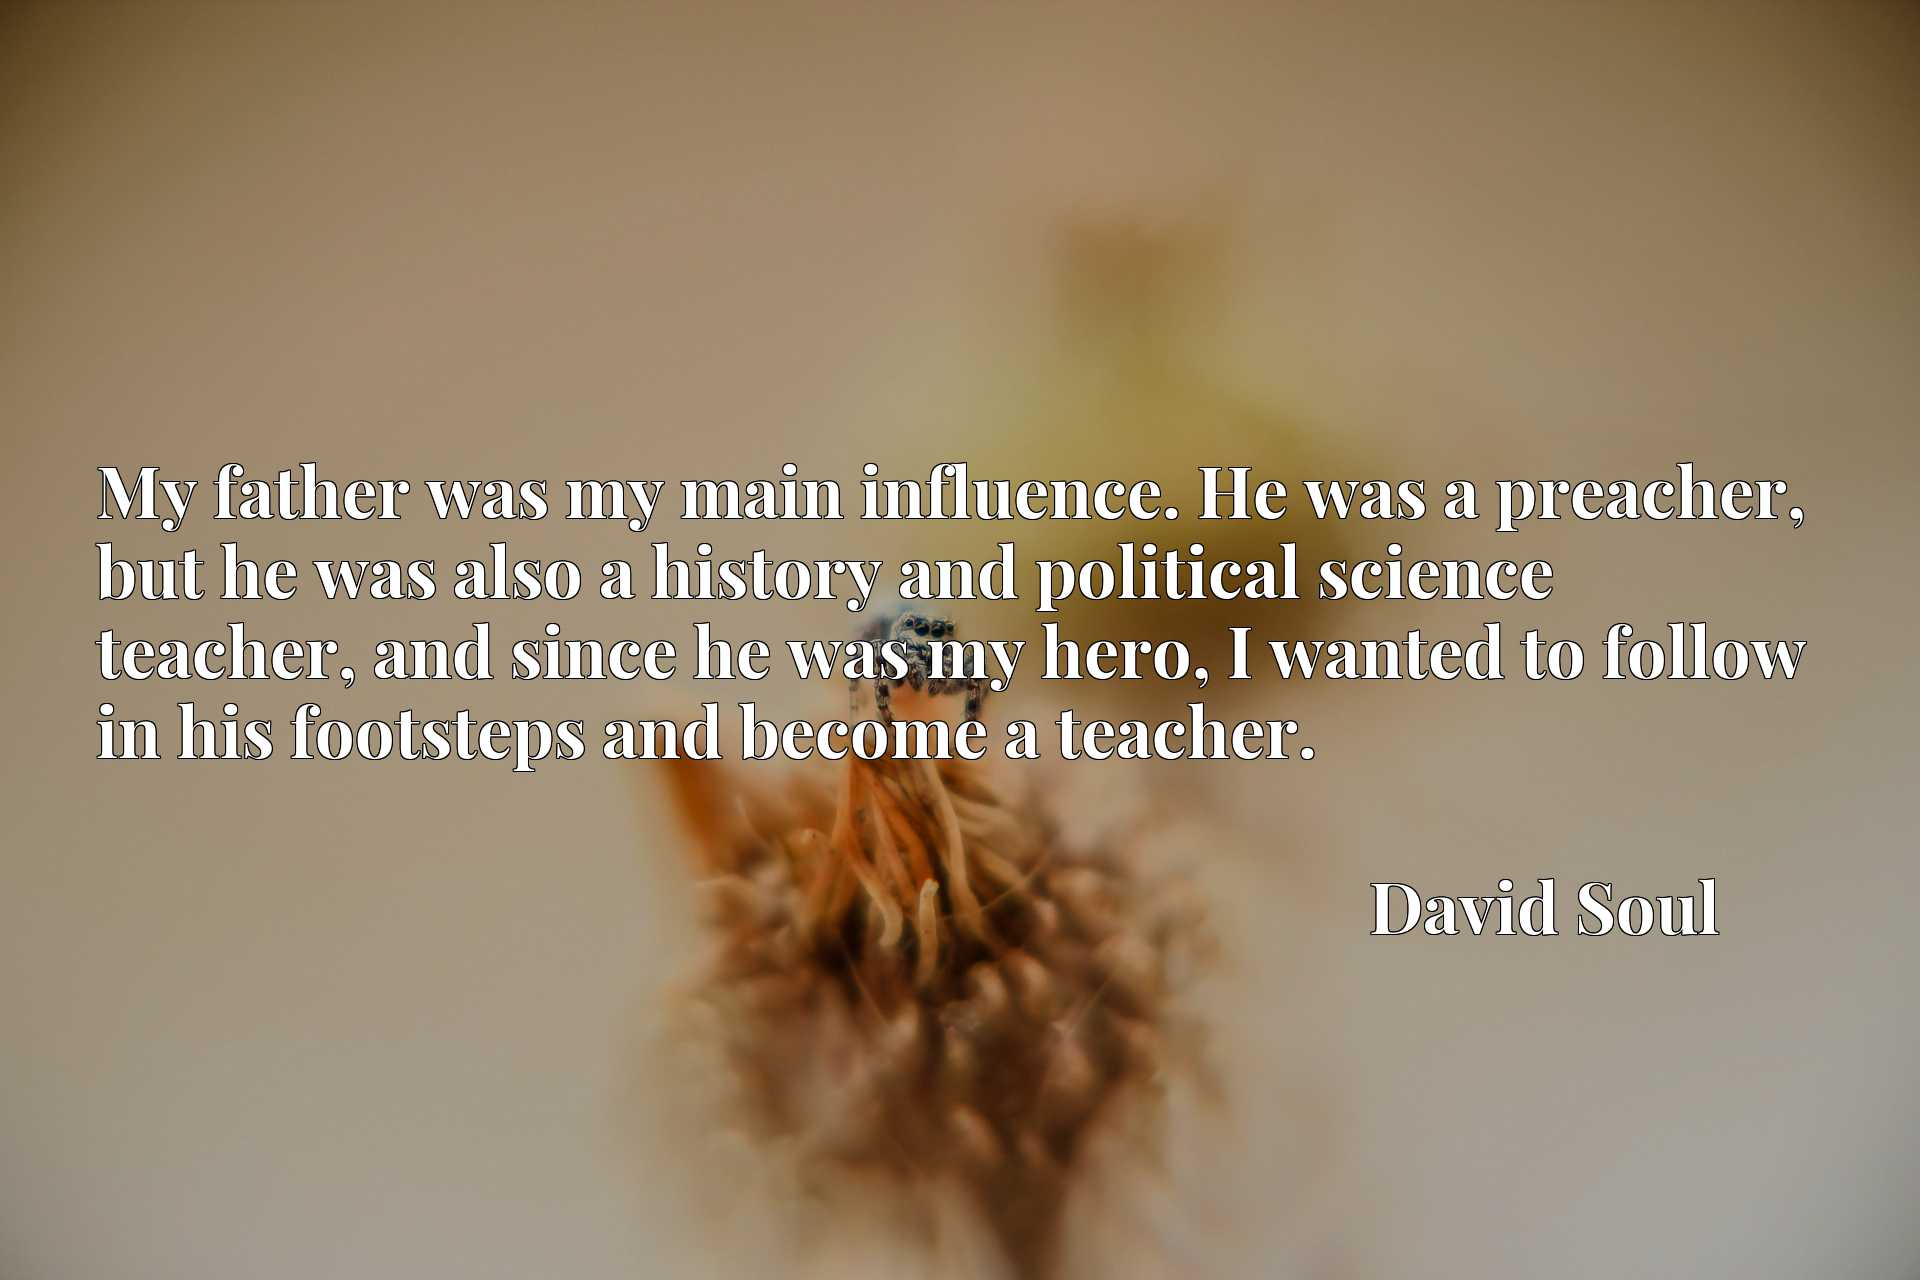 My father was my main influence. He was a preacher, but he was also a history and political science teacher, and since he was my hero, I wanted to follow in his footsteps and become a teacher.